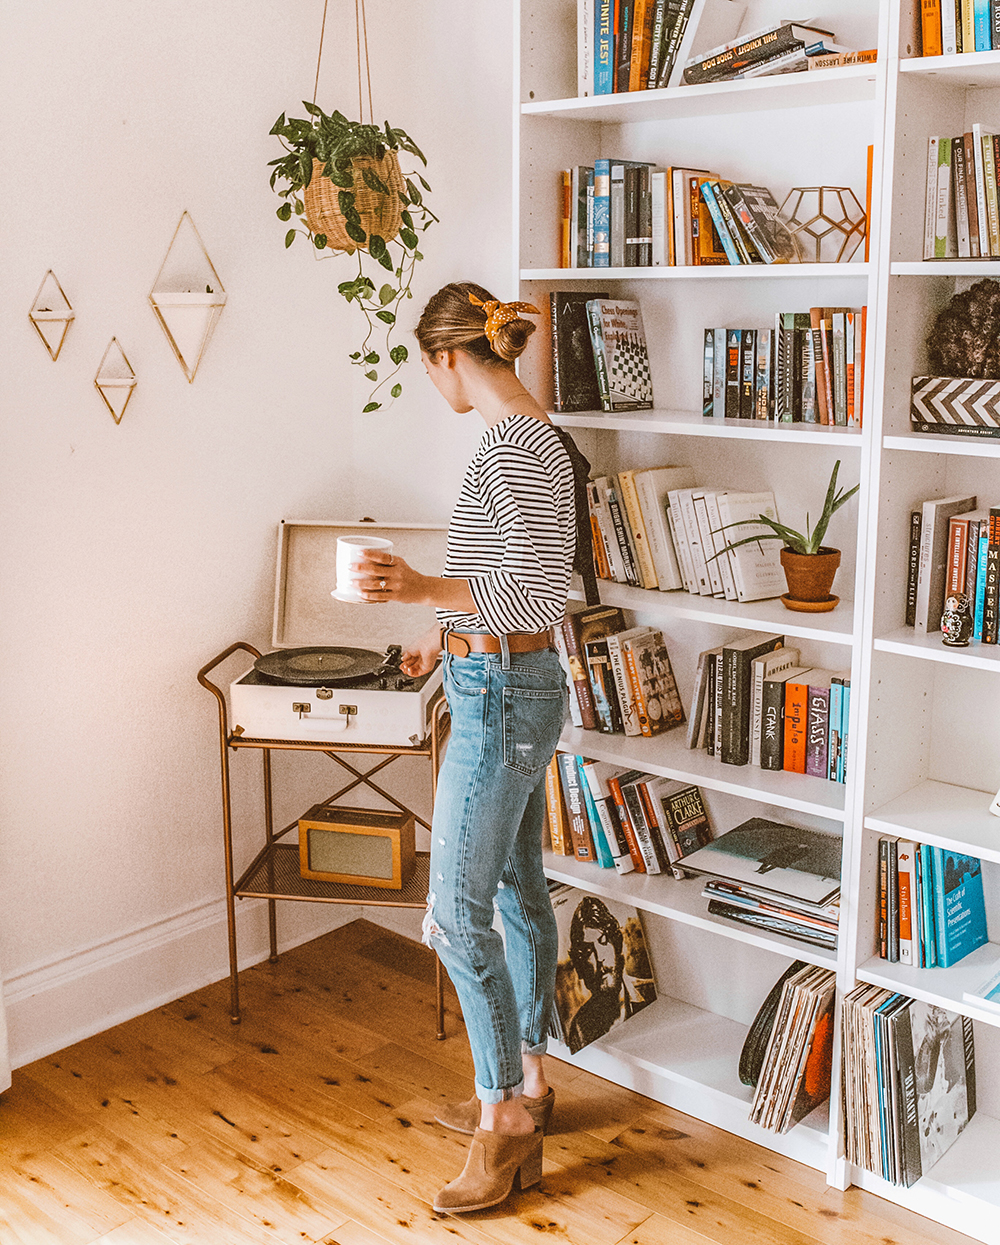 livvyland-blog-olivia-watson-home-decor-billy-ikea-built-in-bookshelves-record-player-cozy-boho-outfit